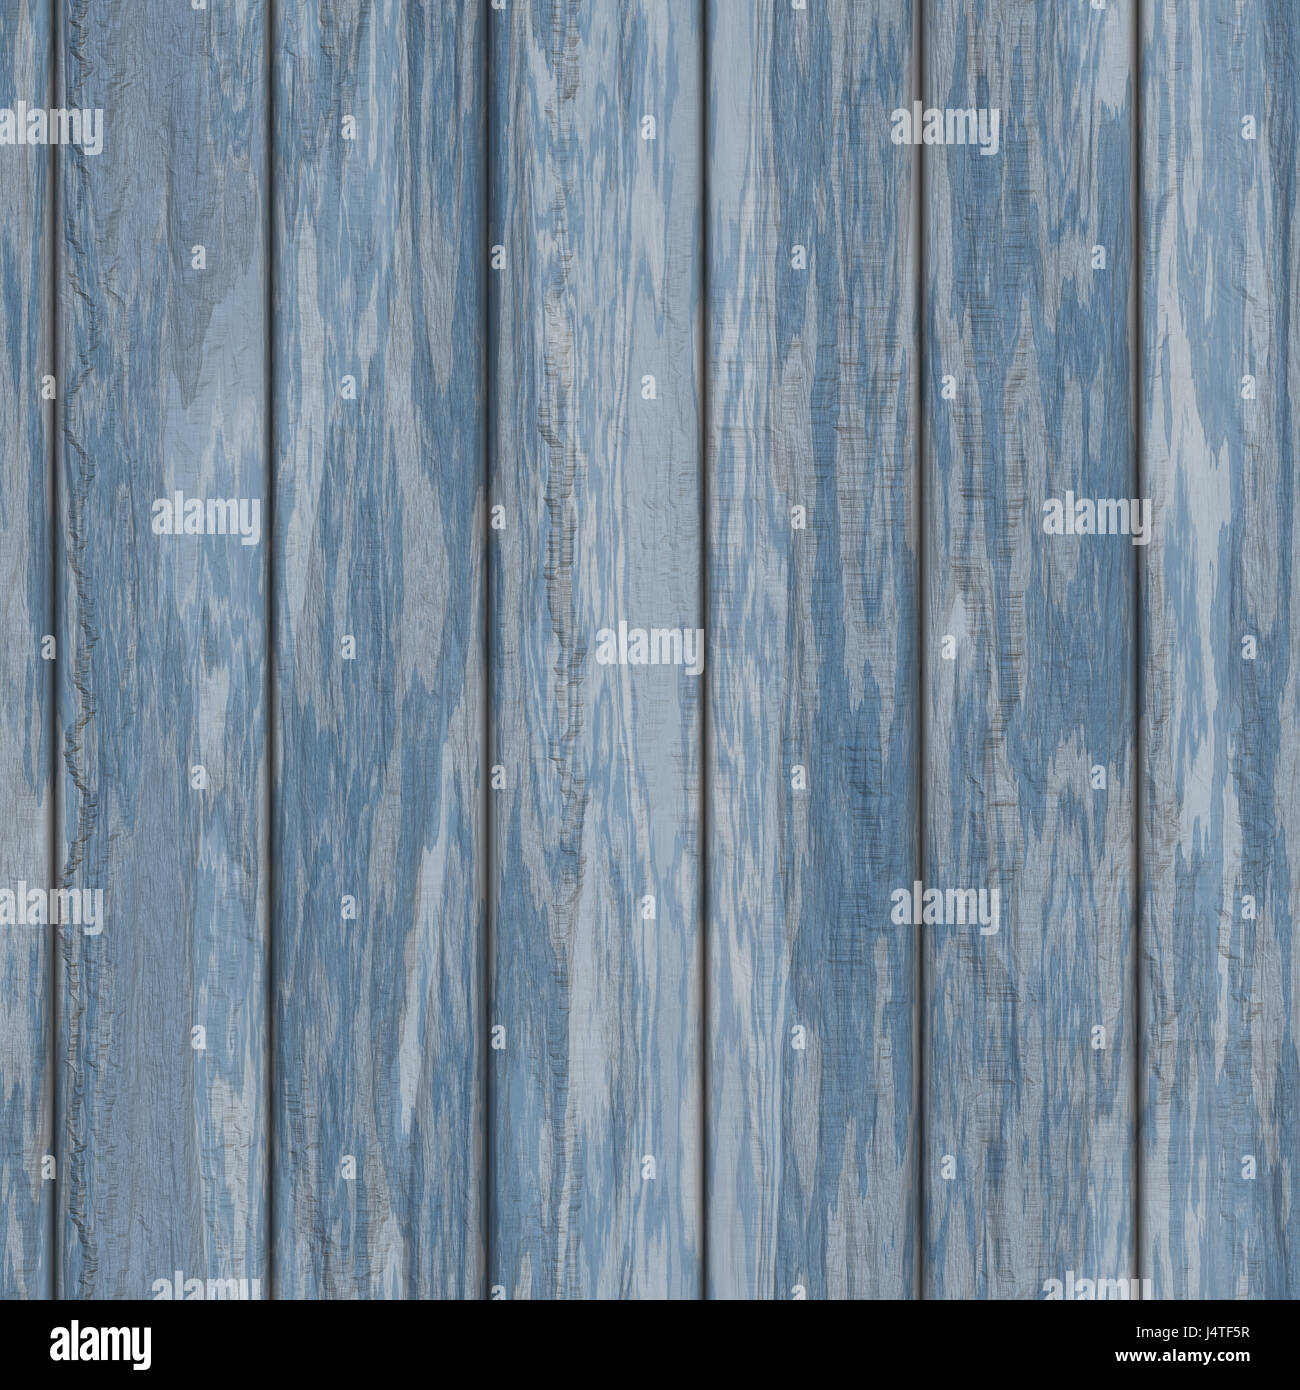 Seamless Painted Wood Pallet Texture